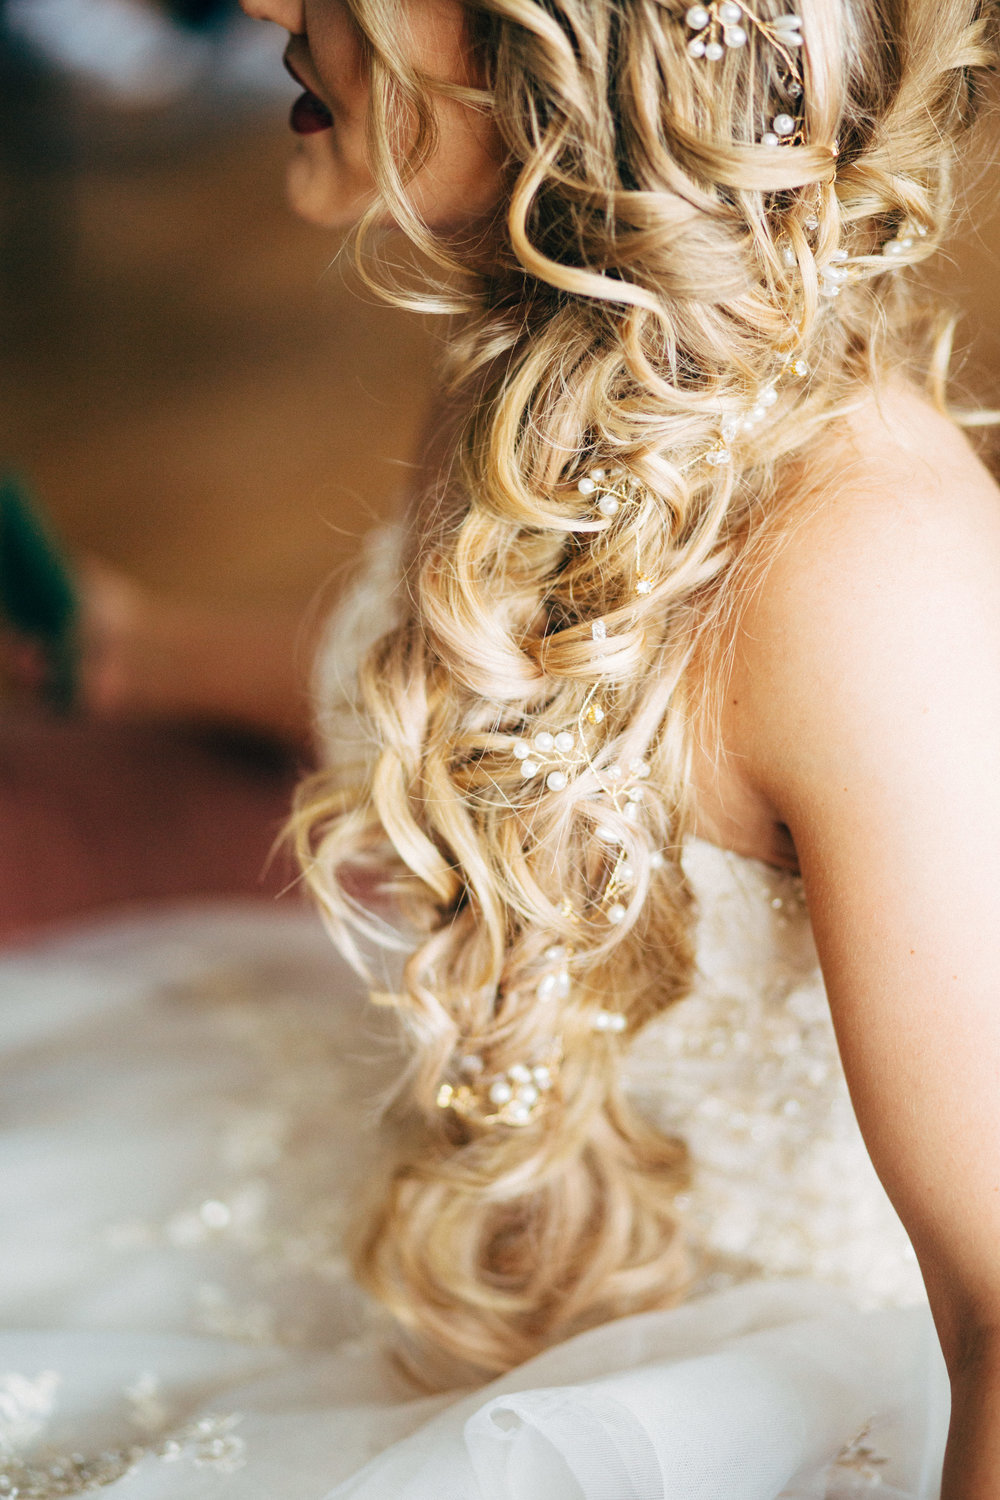 profile of bride with mermaid hair before wedding